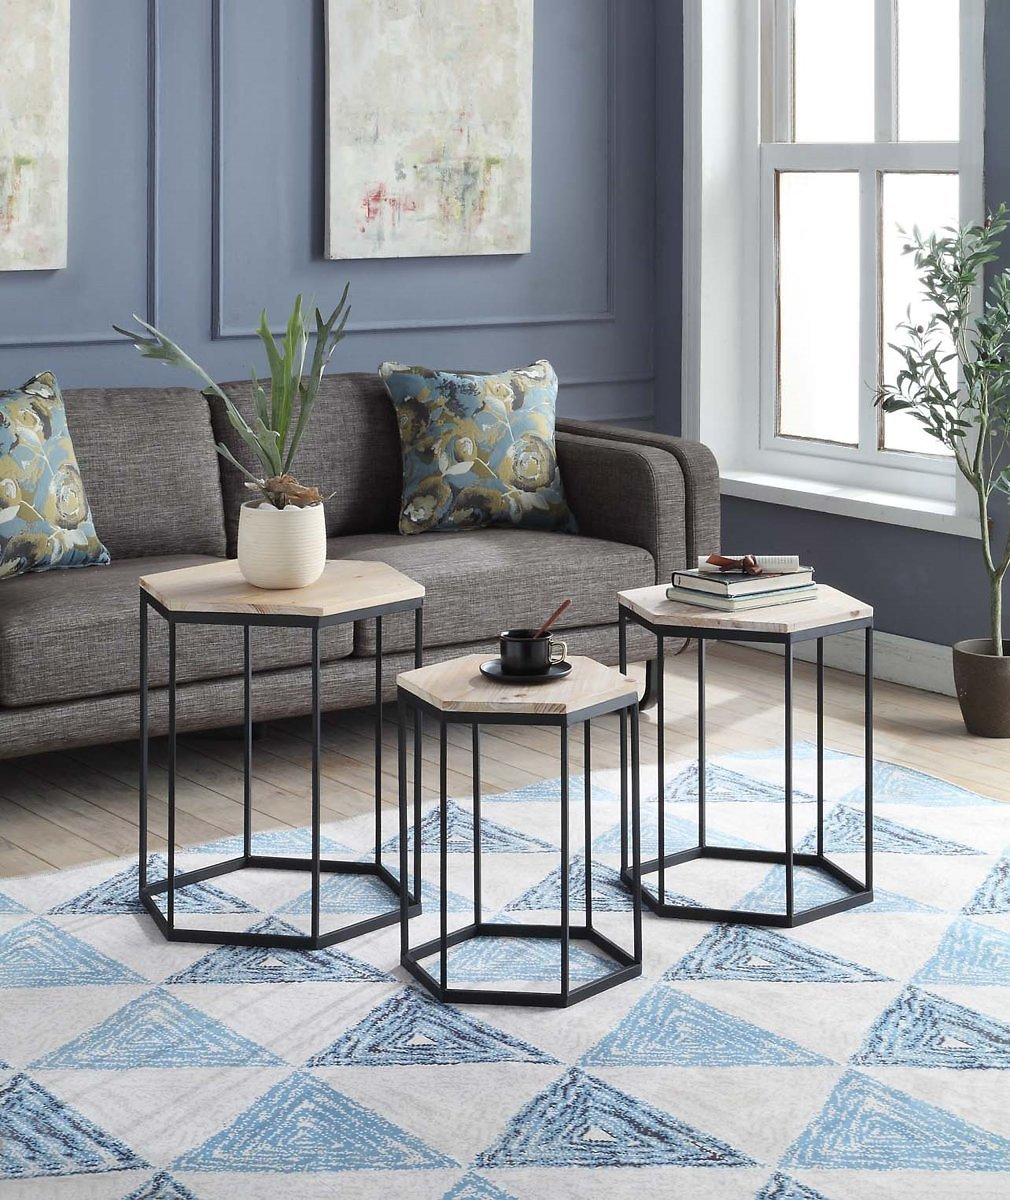 4D Concepts 631029 Layton Nesting Sextagon Tables, Set of 3 - Distressed Wood Top with Black Metal